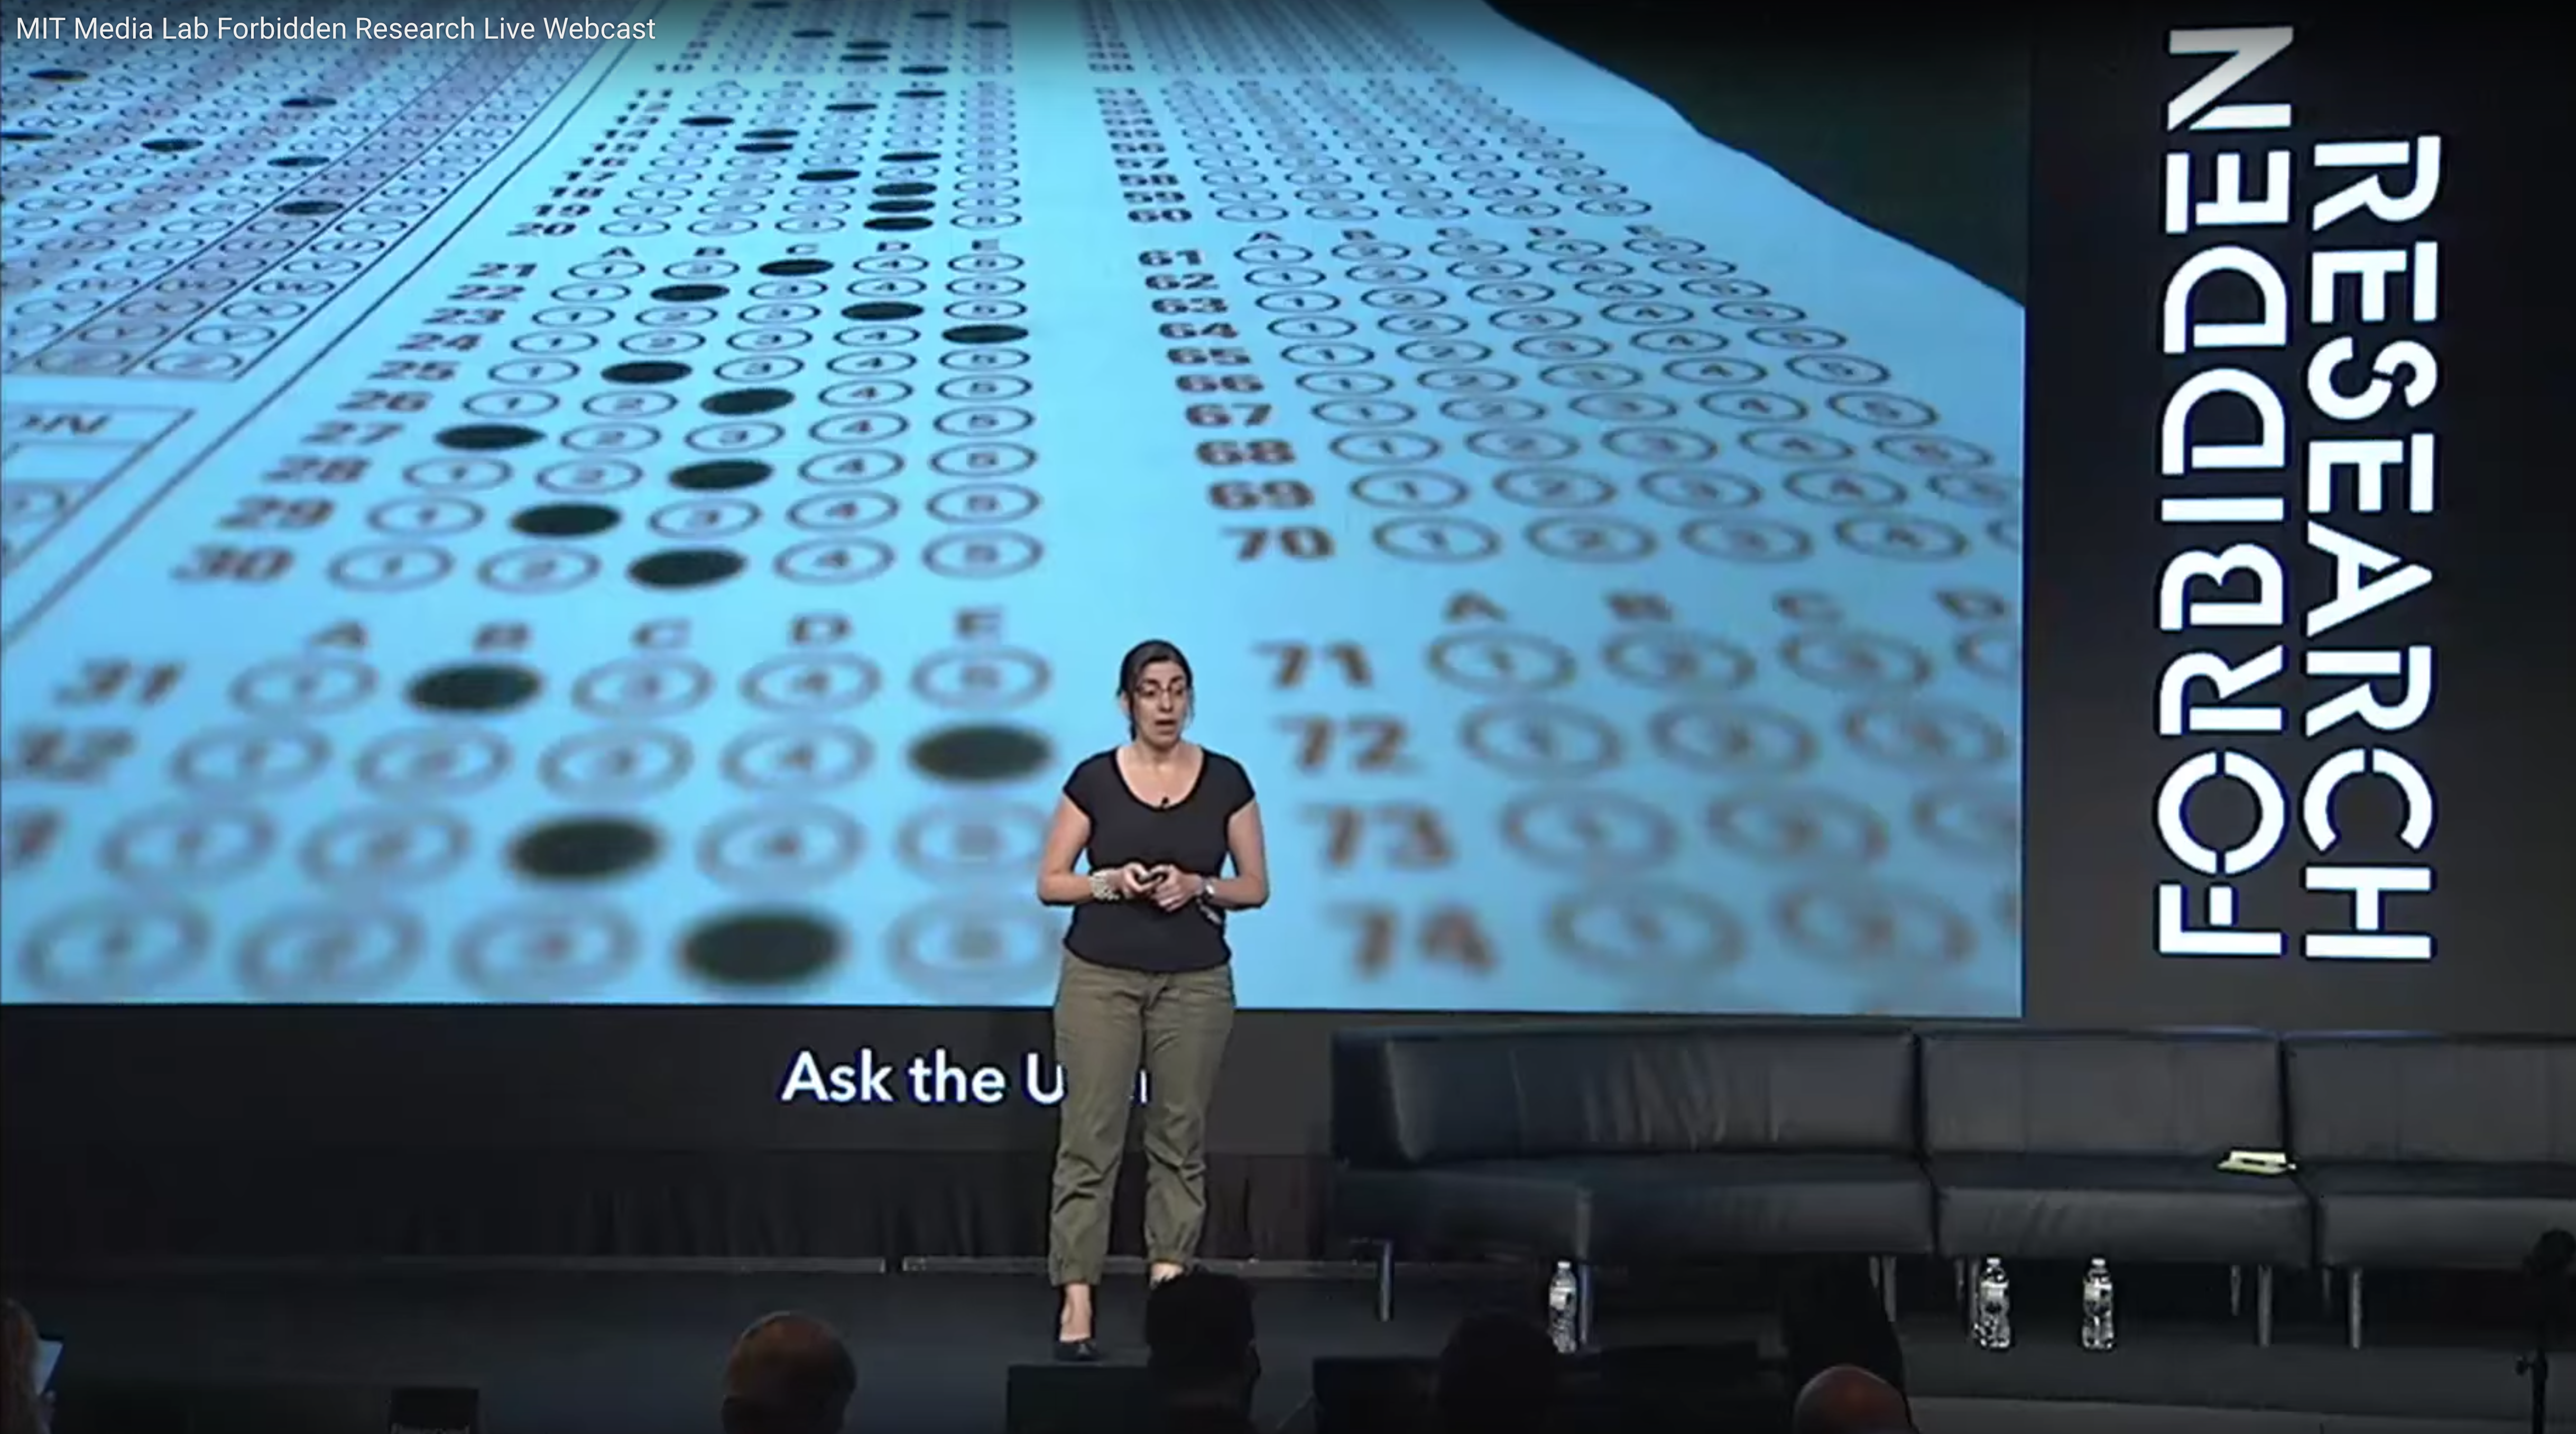 "MIT Media Lab's ""Forbidden Research"" conference 2016. Credit: MIT Media Lab, Youtube."